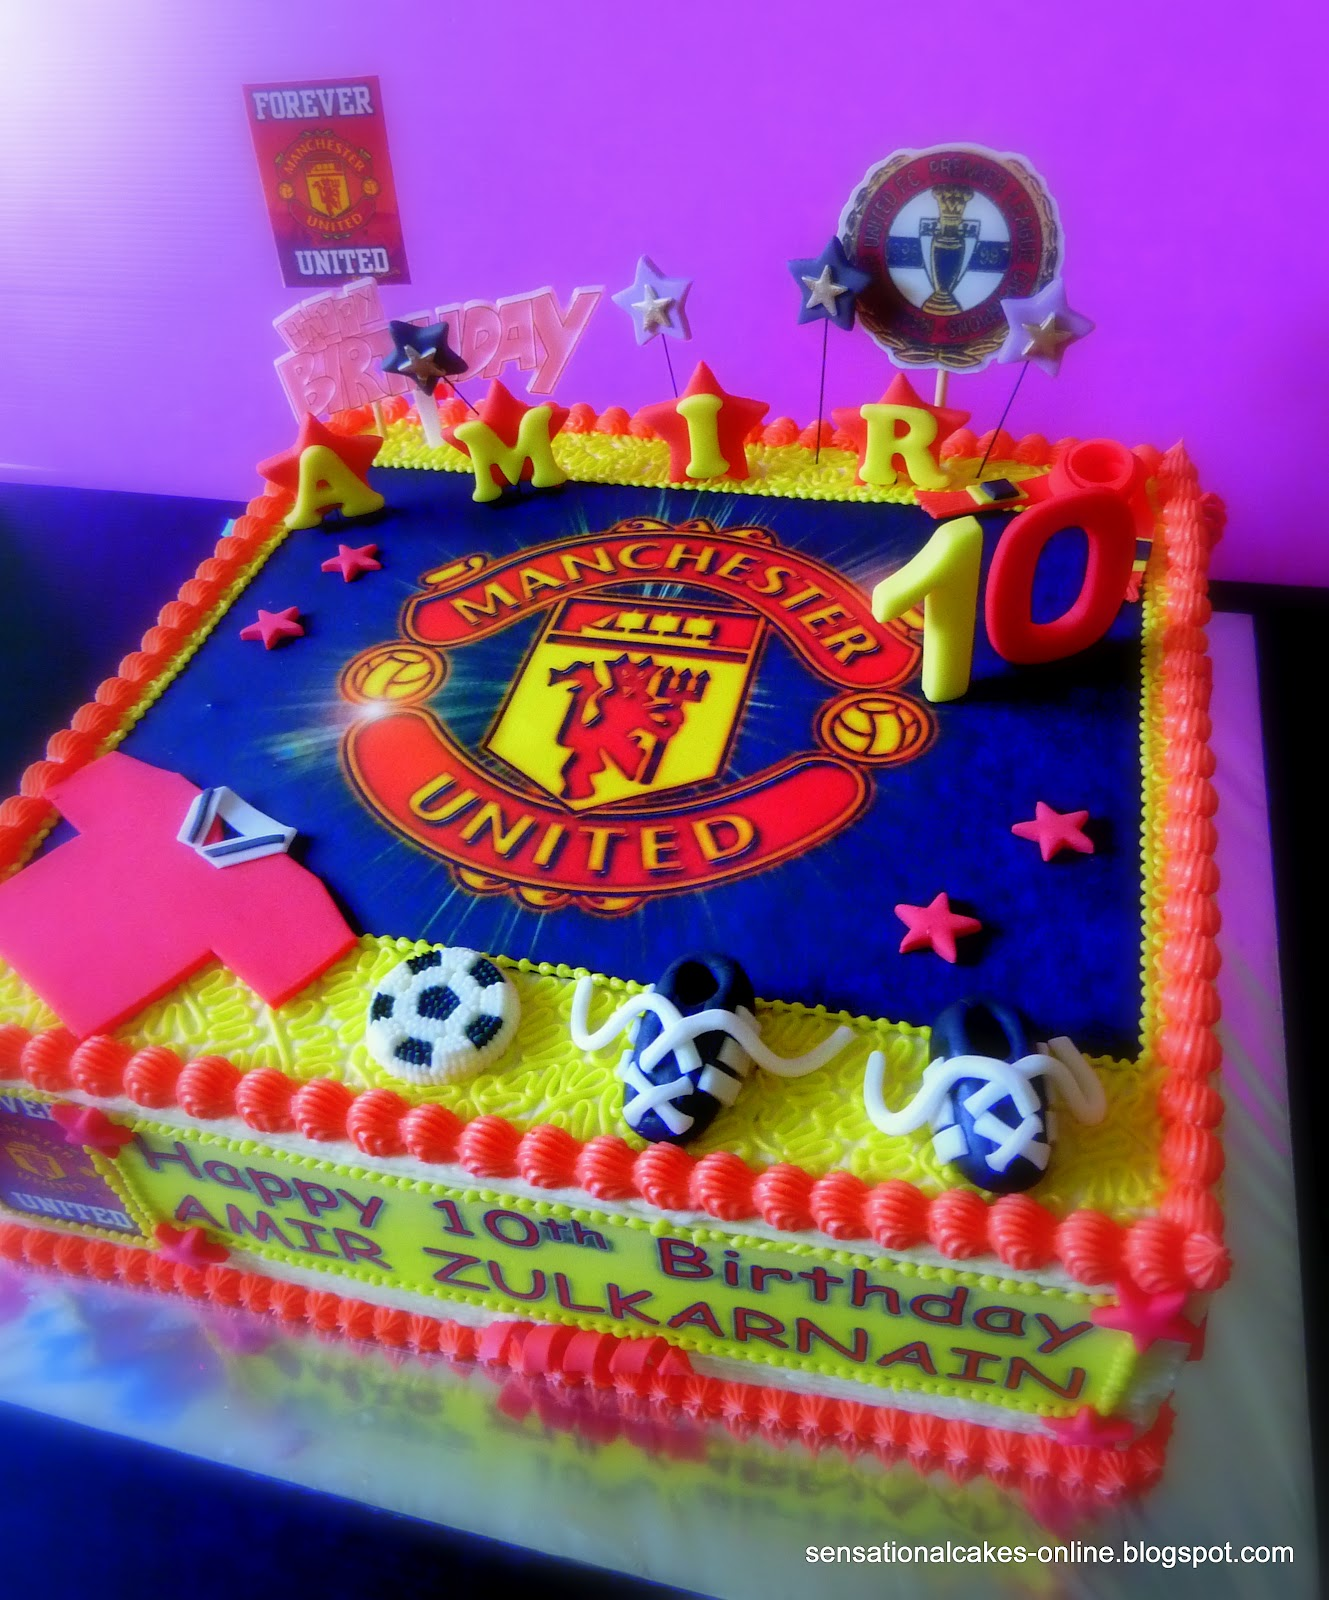 The Sensational Cakes Manchester United Cakes Singapore To Share